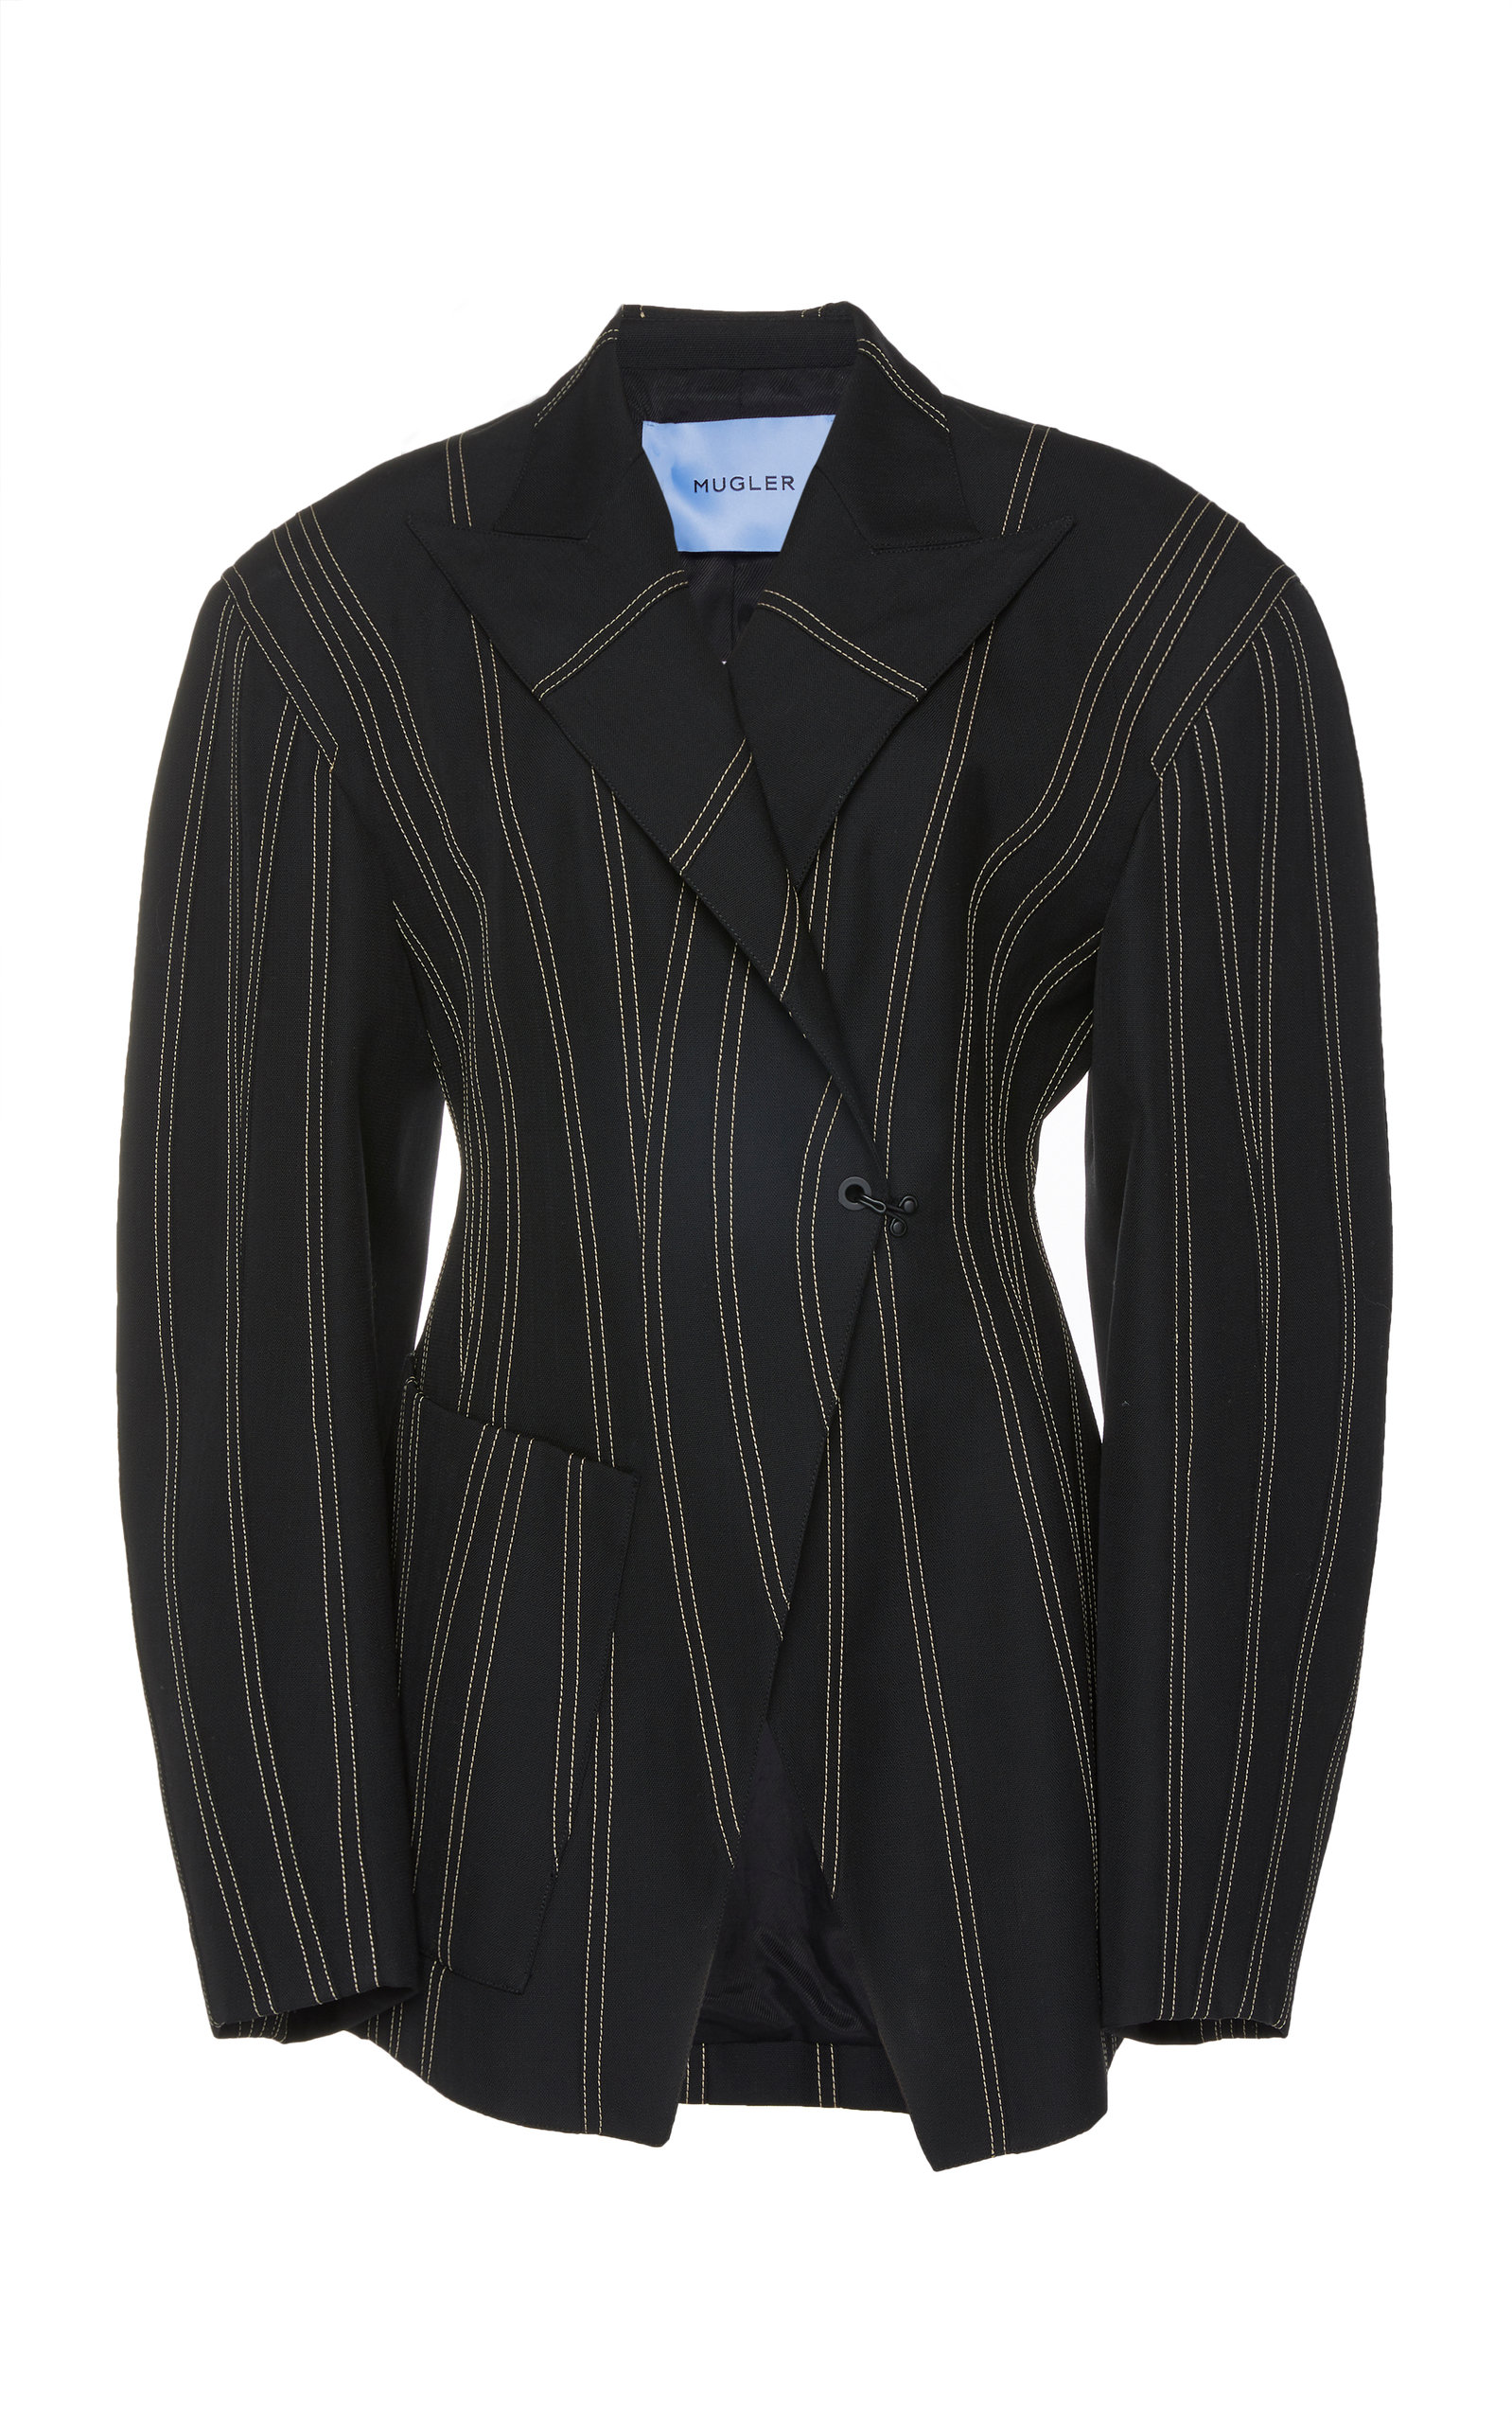 Mugler SCULPTED SPIRAL-SEAM VIRGIN WOOL JACKET